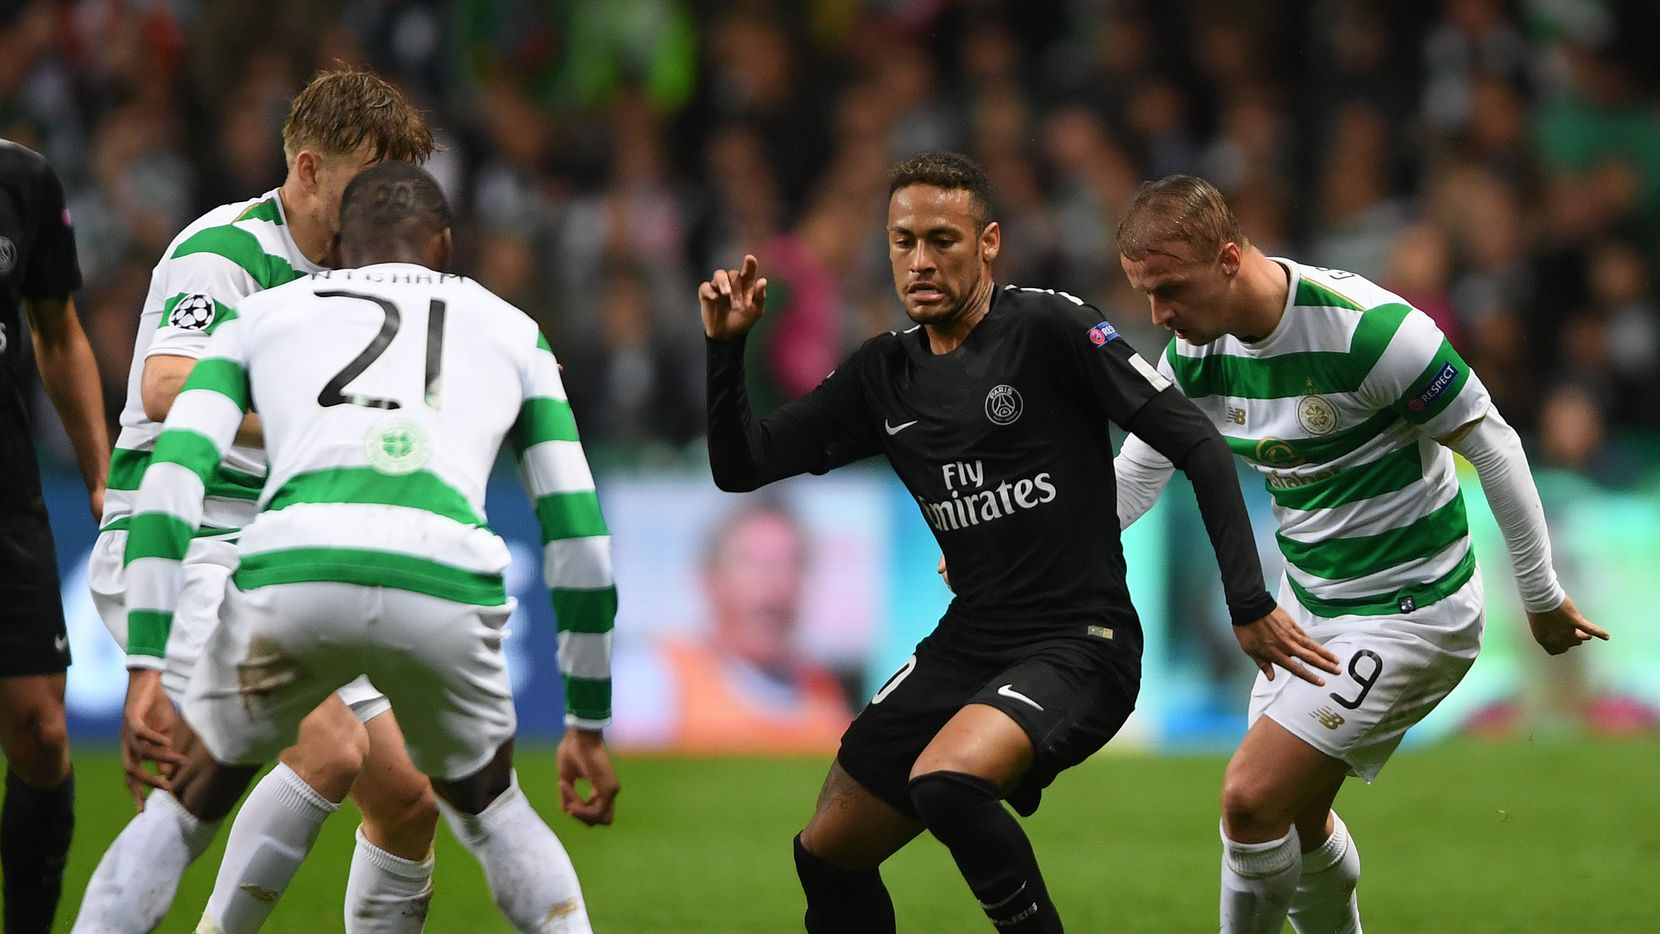 Neymar durante un partido entre Celtic y Paris Saint-Germain (MIKE HEWITT/GETTY IMAGES)